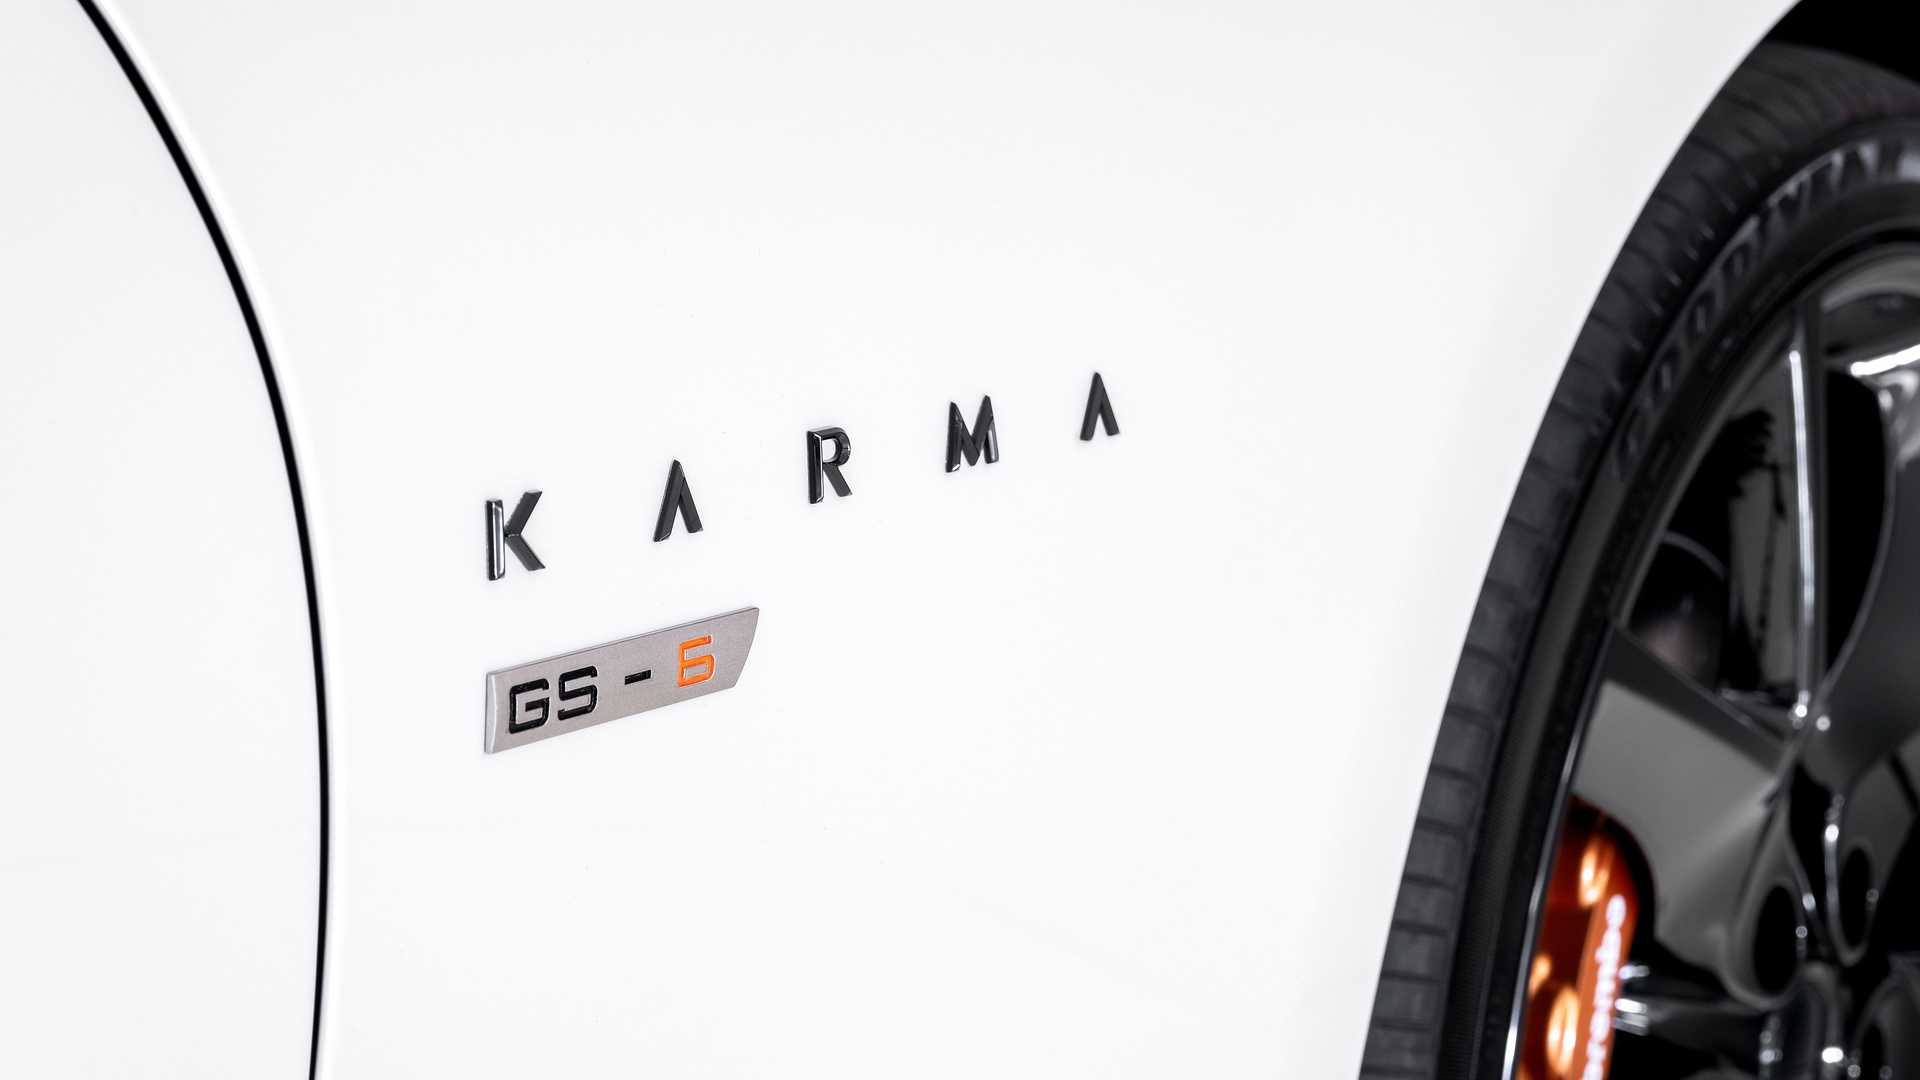 Karma-GS-6-and-GSe-6-32